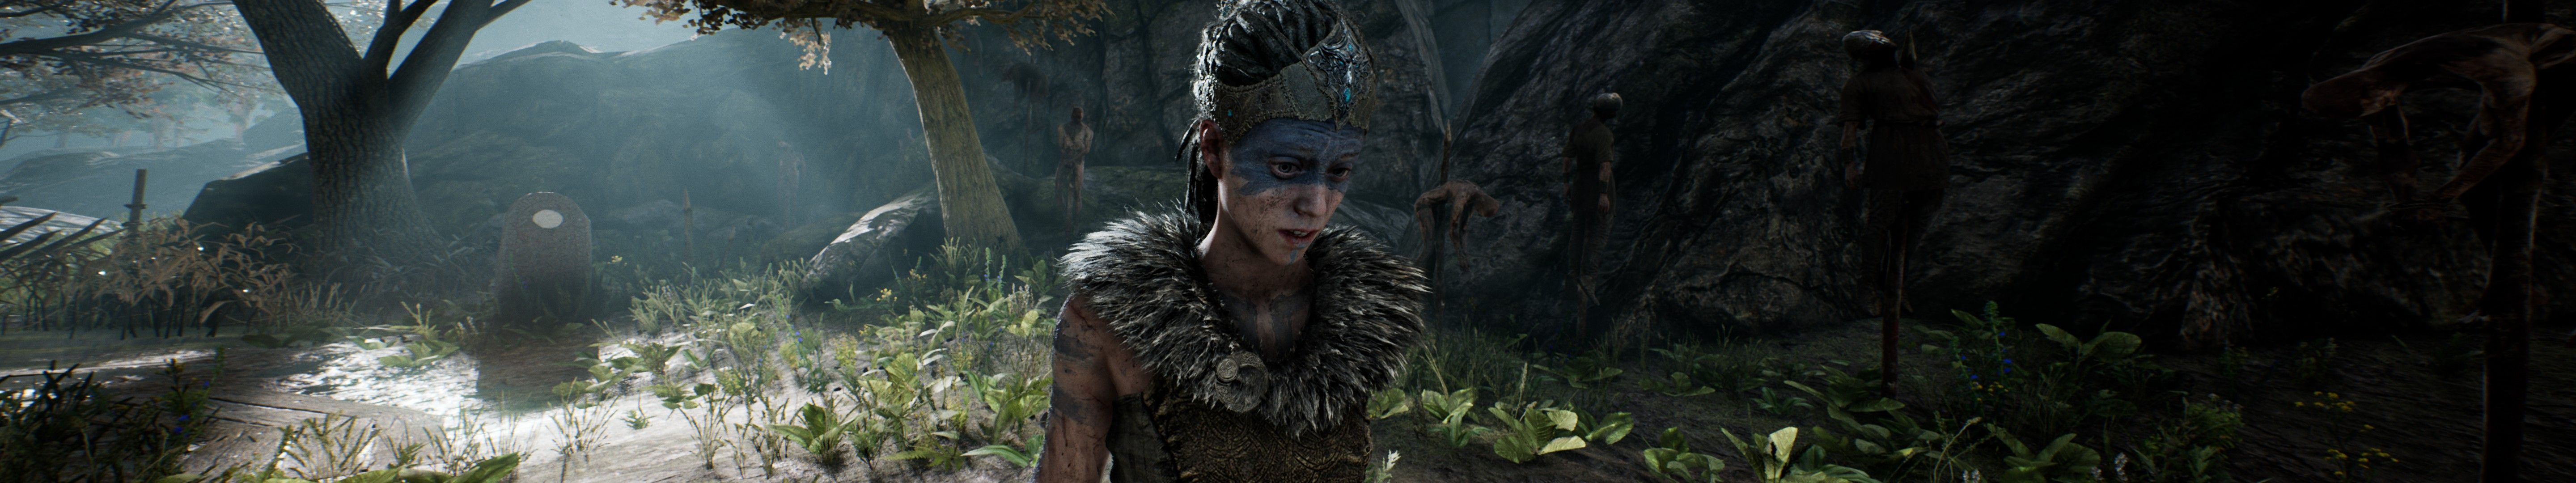 5760x1080] Hellblade: Senua's Sacrifice Wallpapers